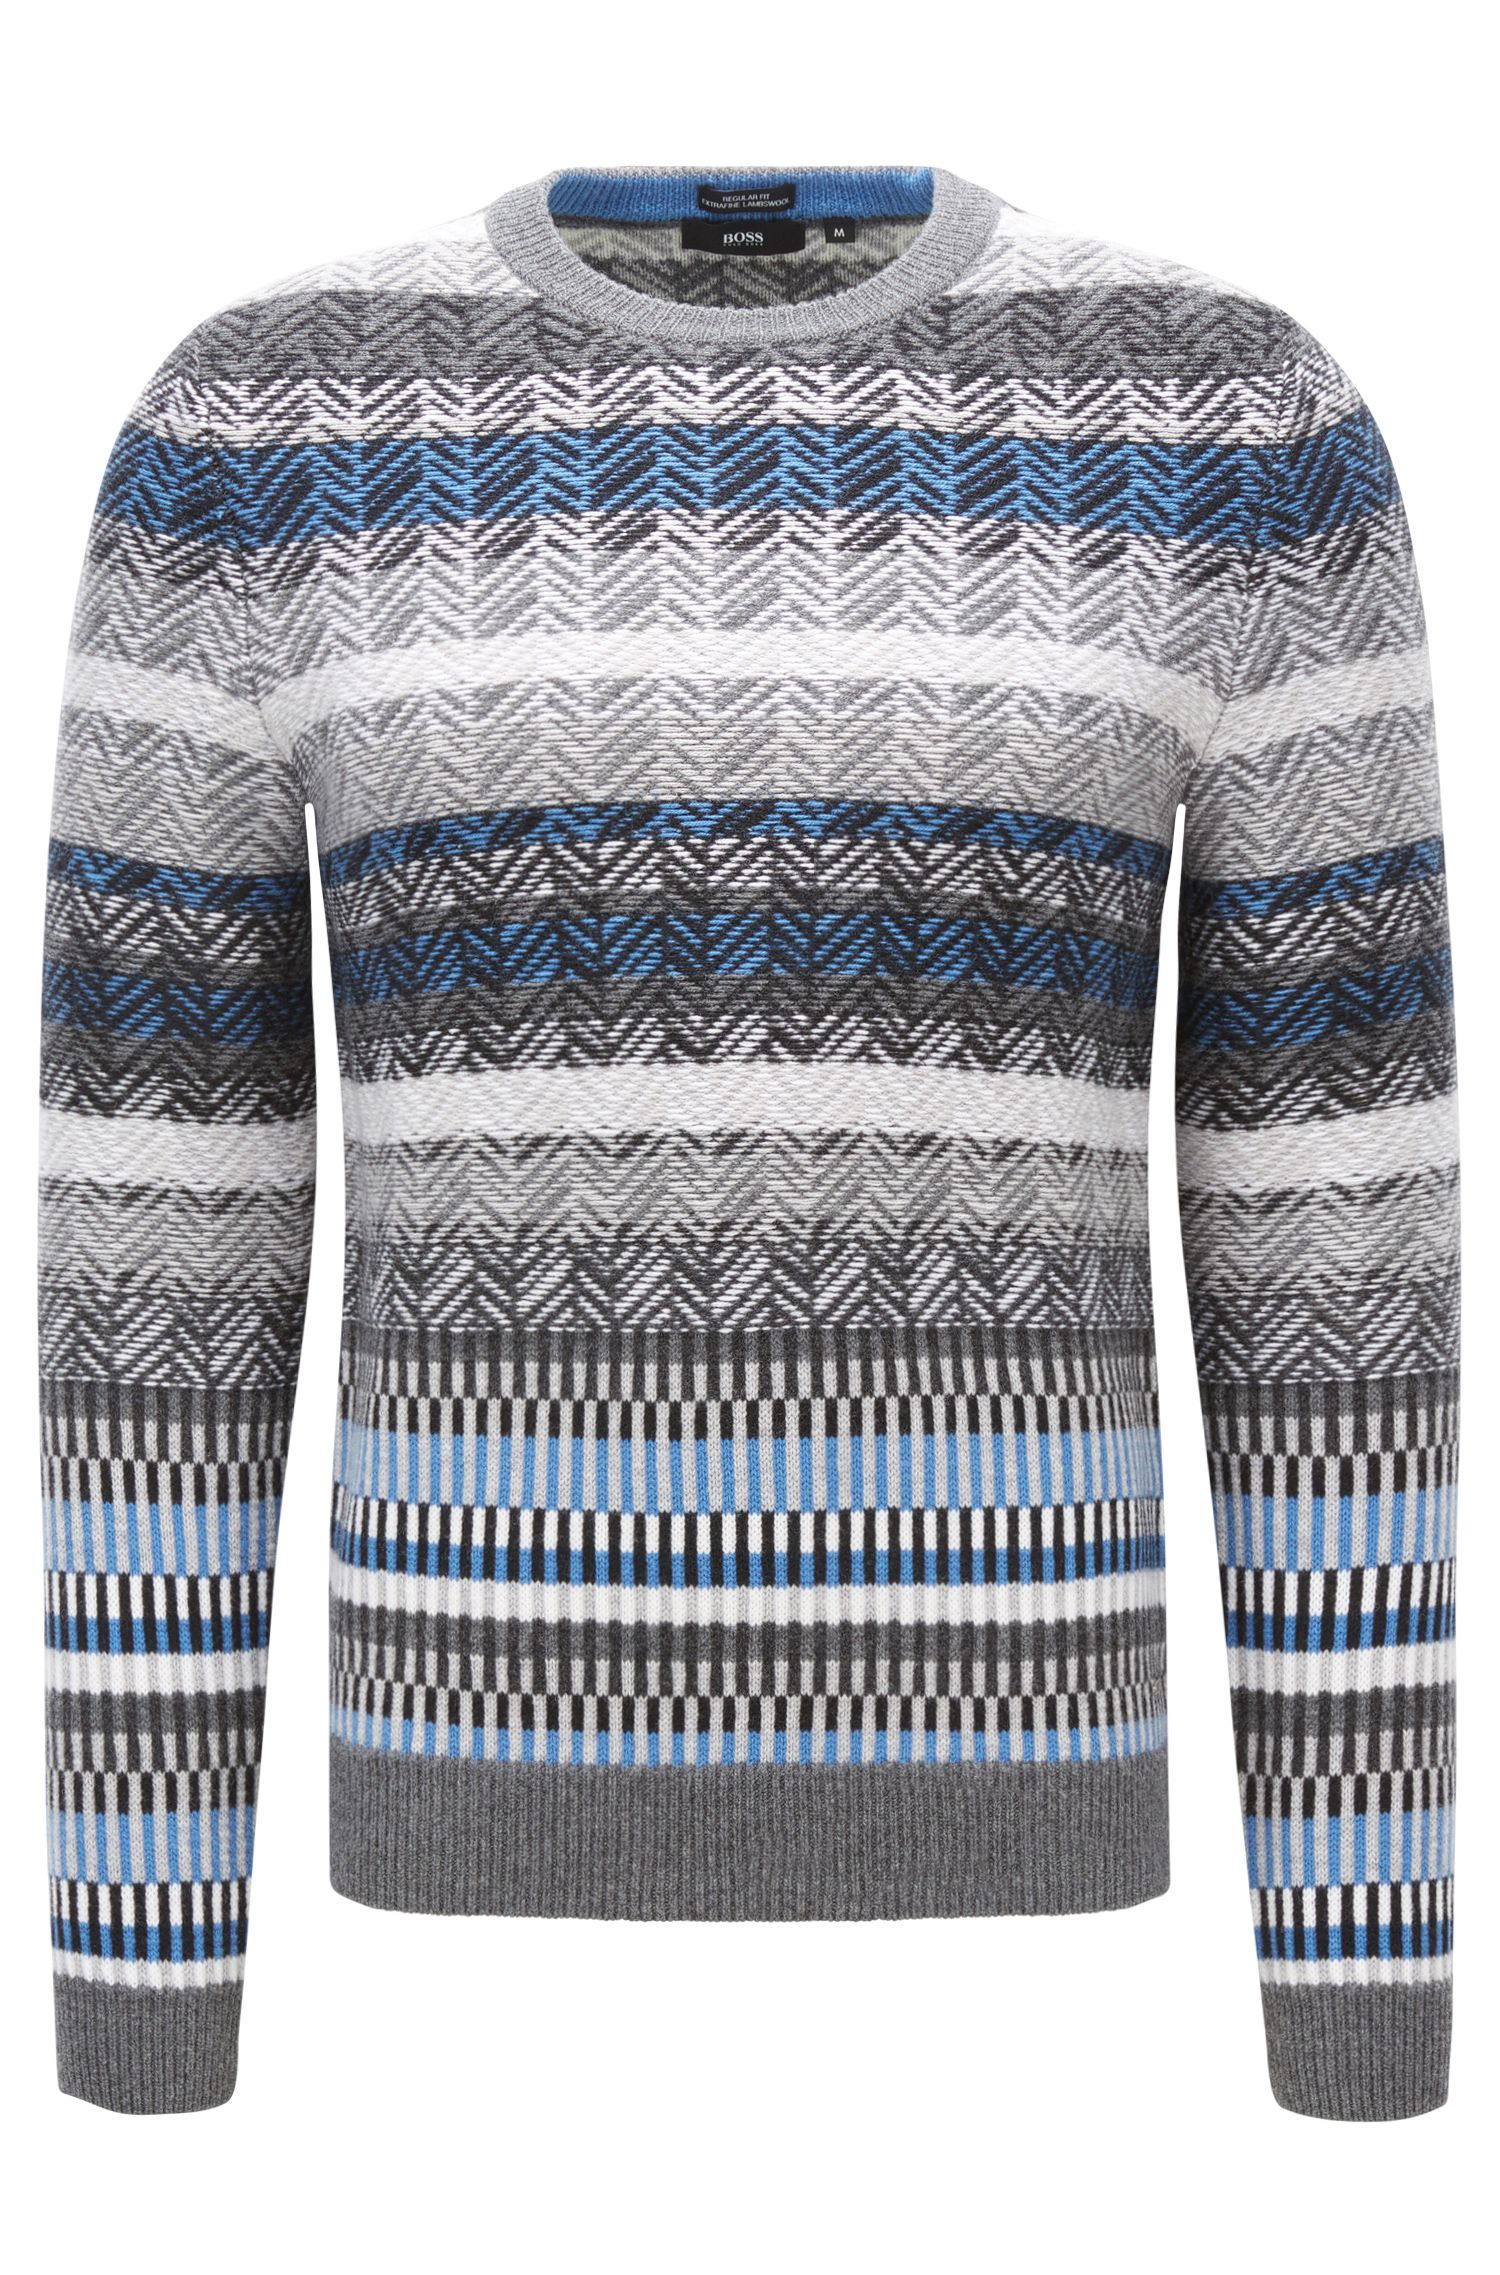 'Nemonti' | Fair Isle Virgin Wool Sweater